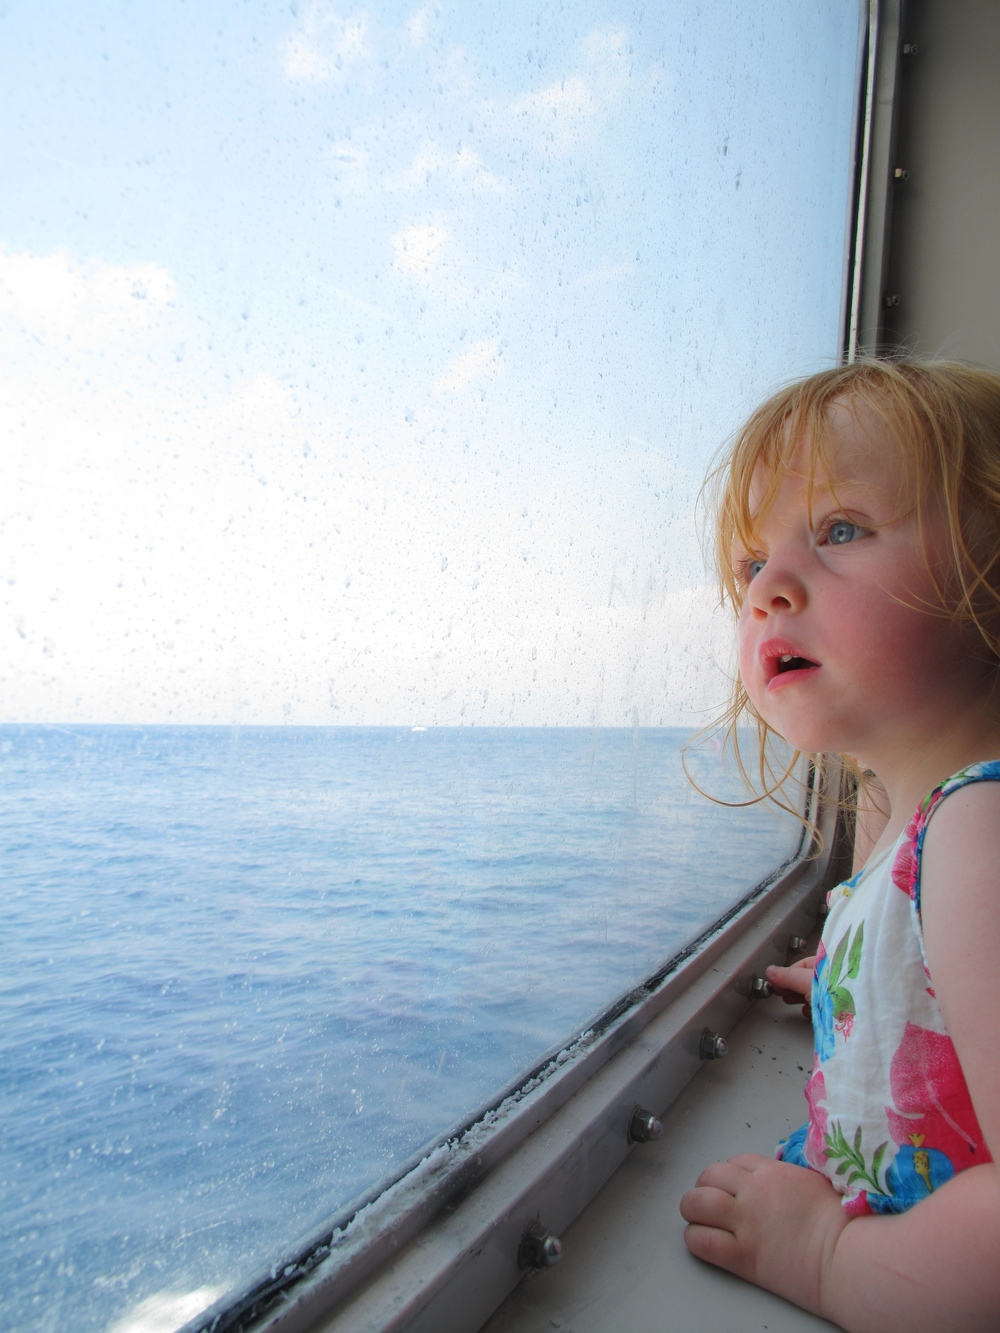 An Italian cherub baby looking out at the ocean